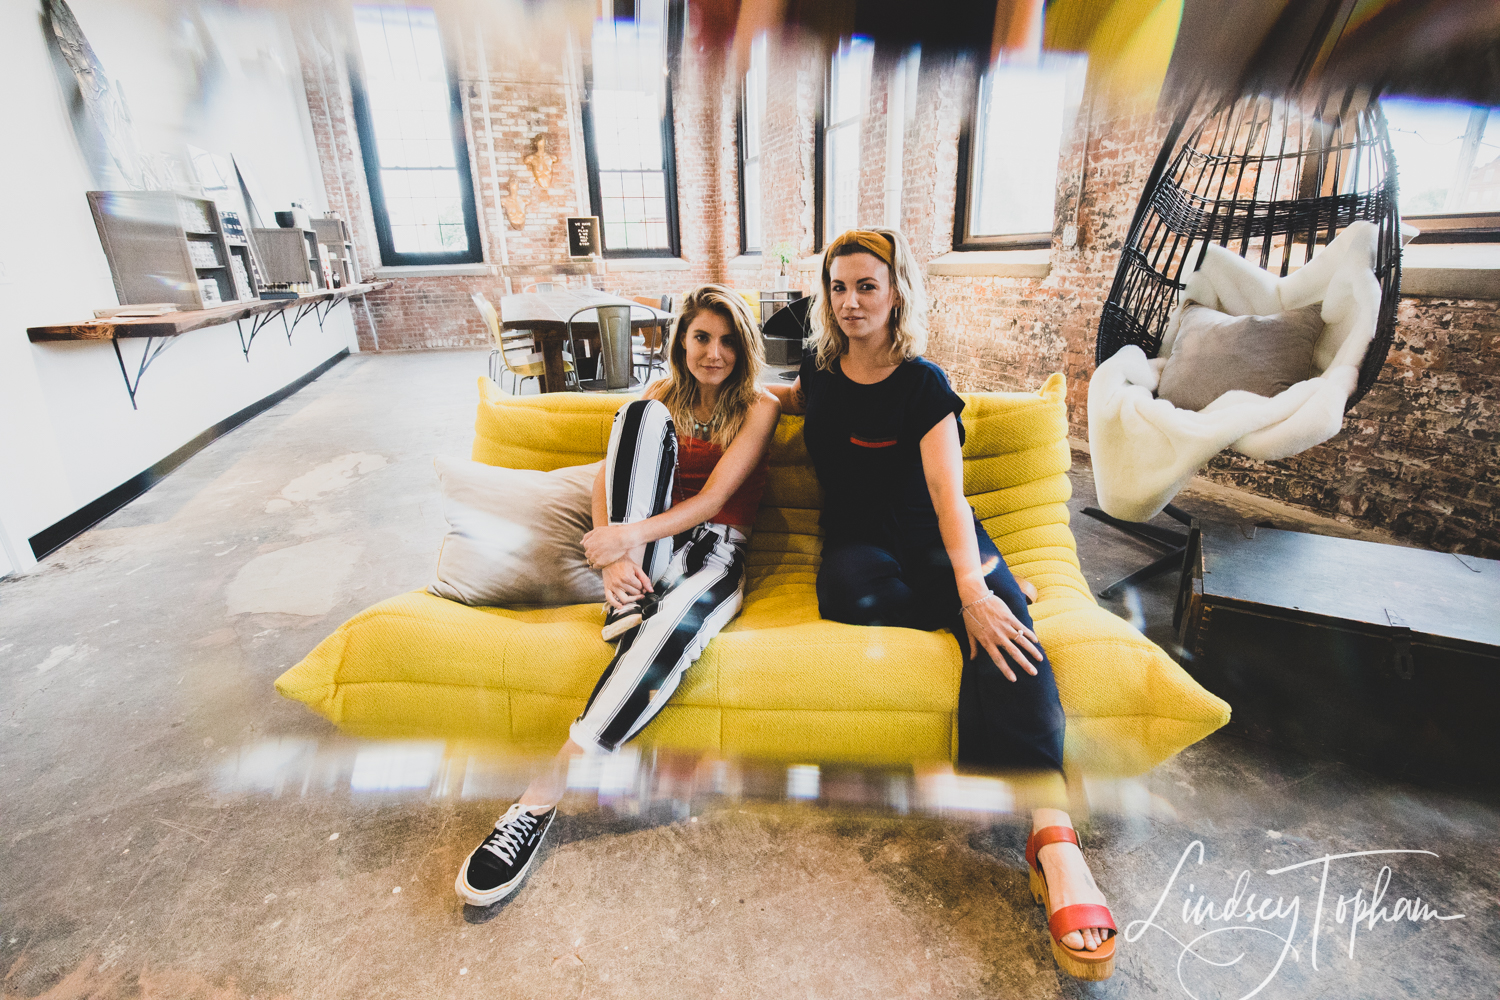 Chelsea Falcetti (left) and Tiffany Duchesne (right), owners of The Plan, a sustainable salon Holyoke, Massachusetts.